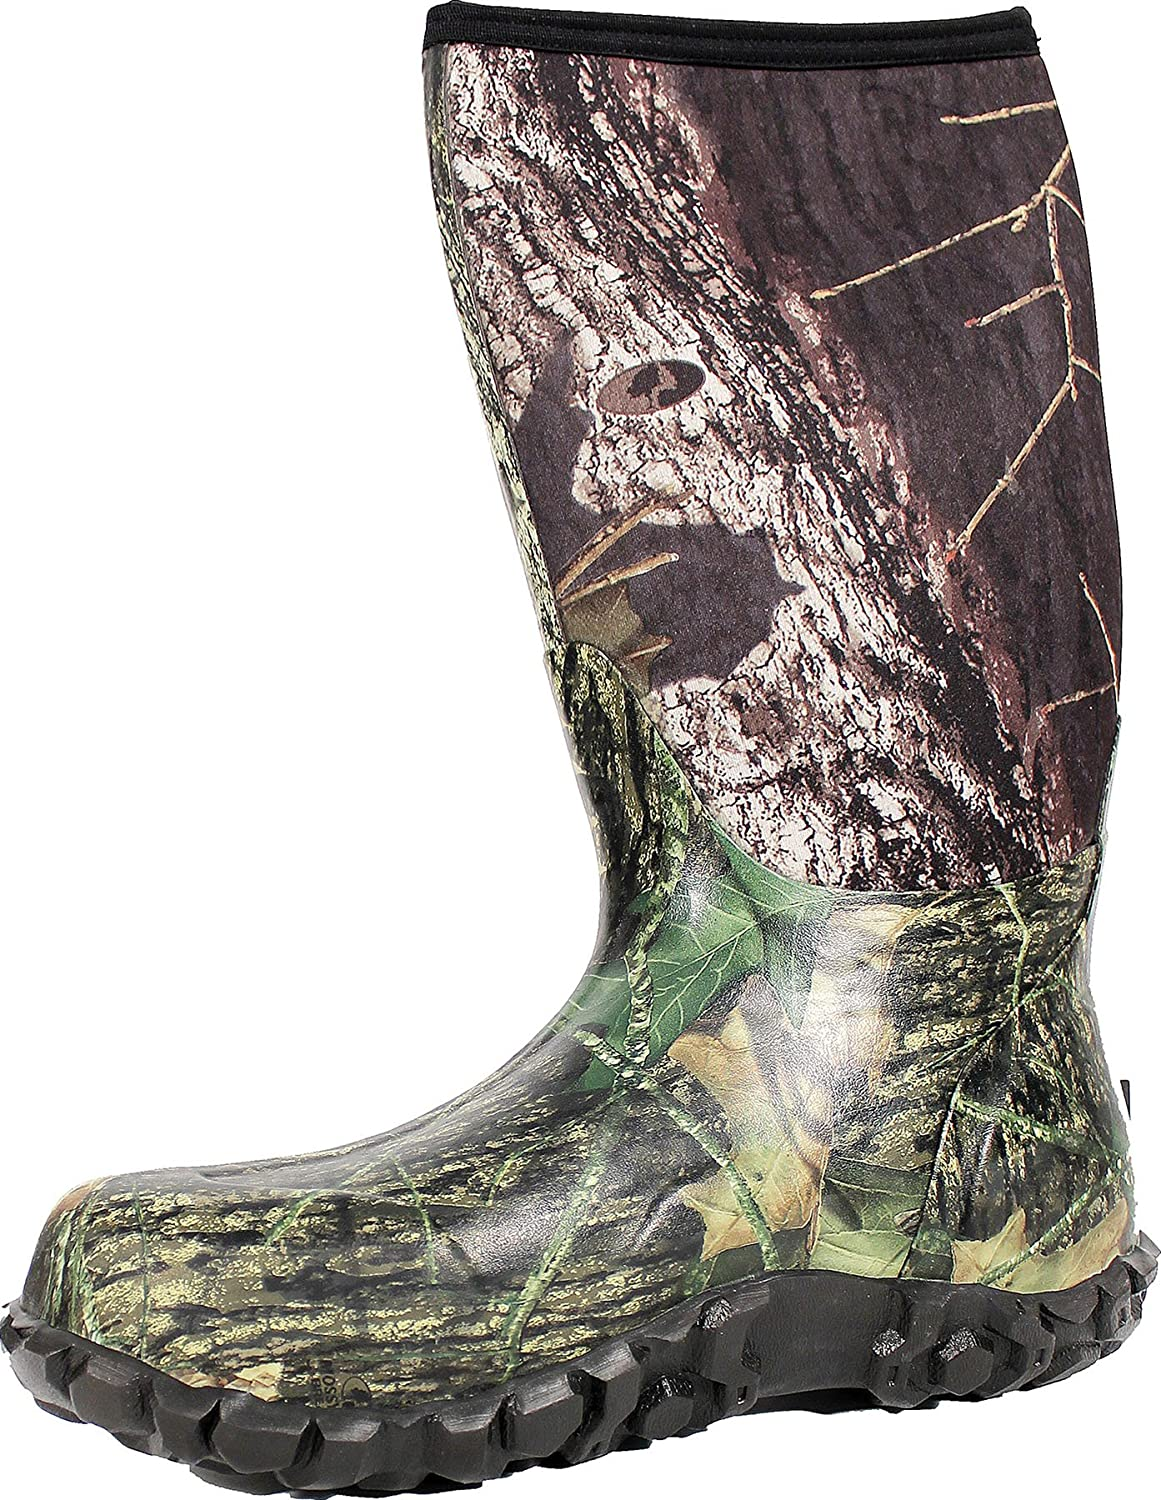 Bogs Mens Classic High No Handle WaterproofInsulated Rain and Winter Snow Boot